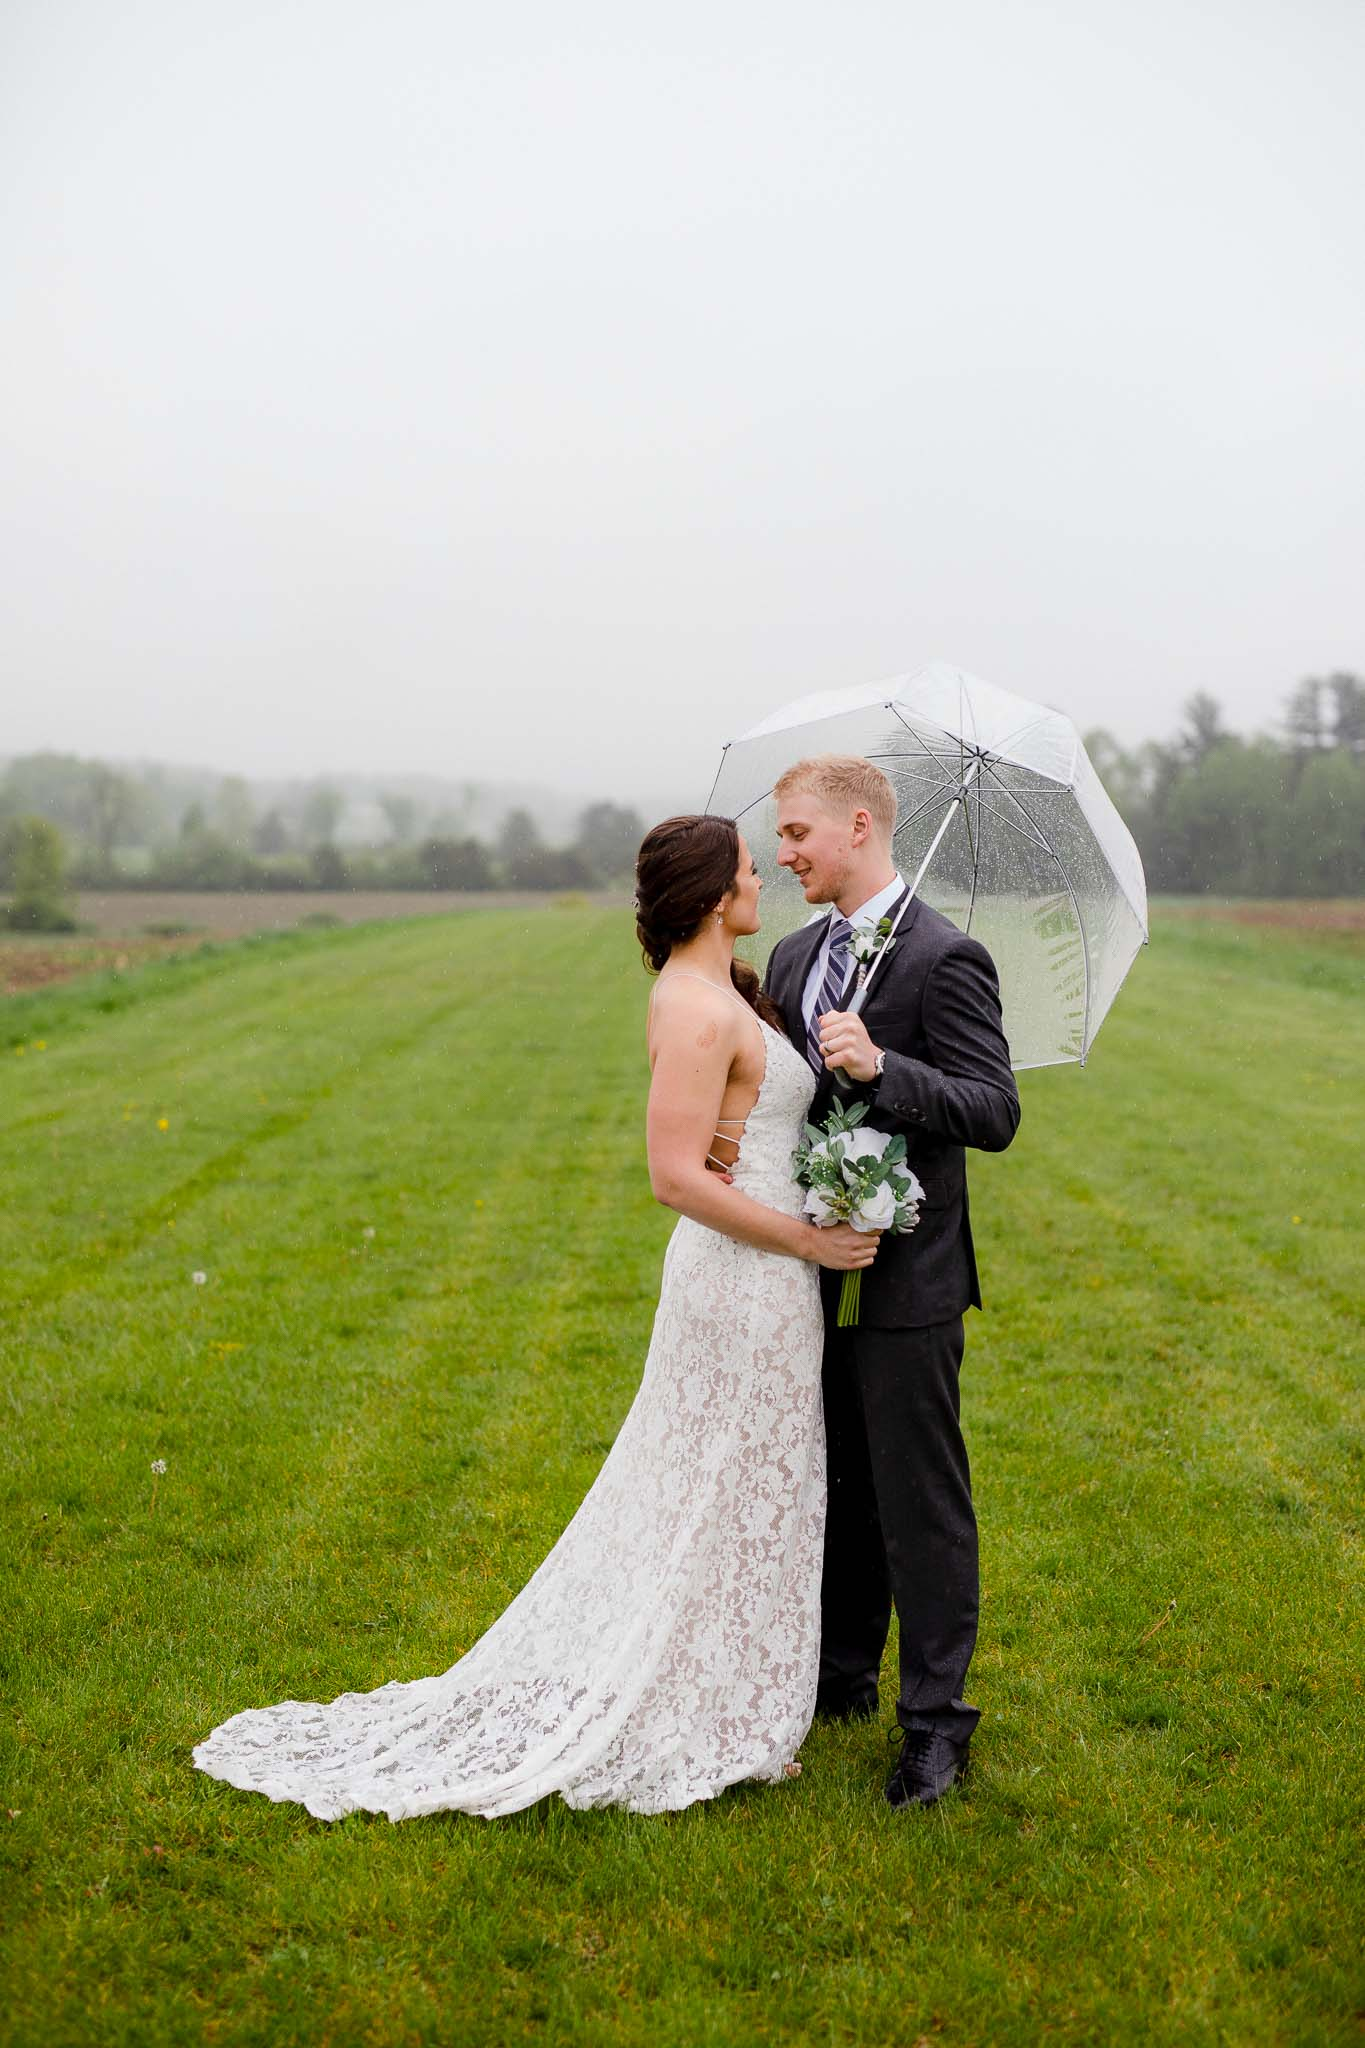 Bride and groom pose under clear umbrella during their rainy wedding day in Lake George, New York